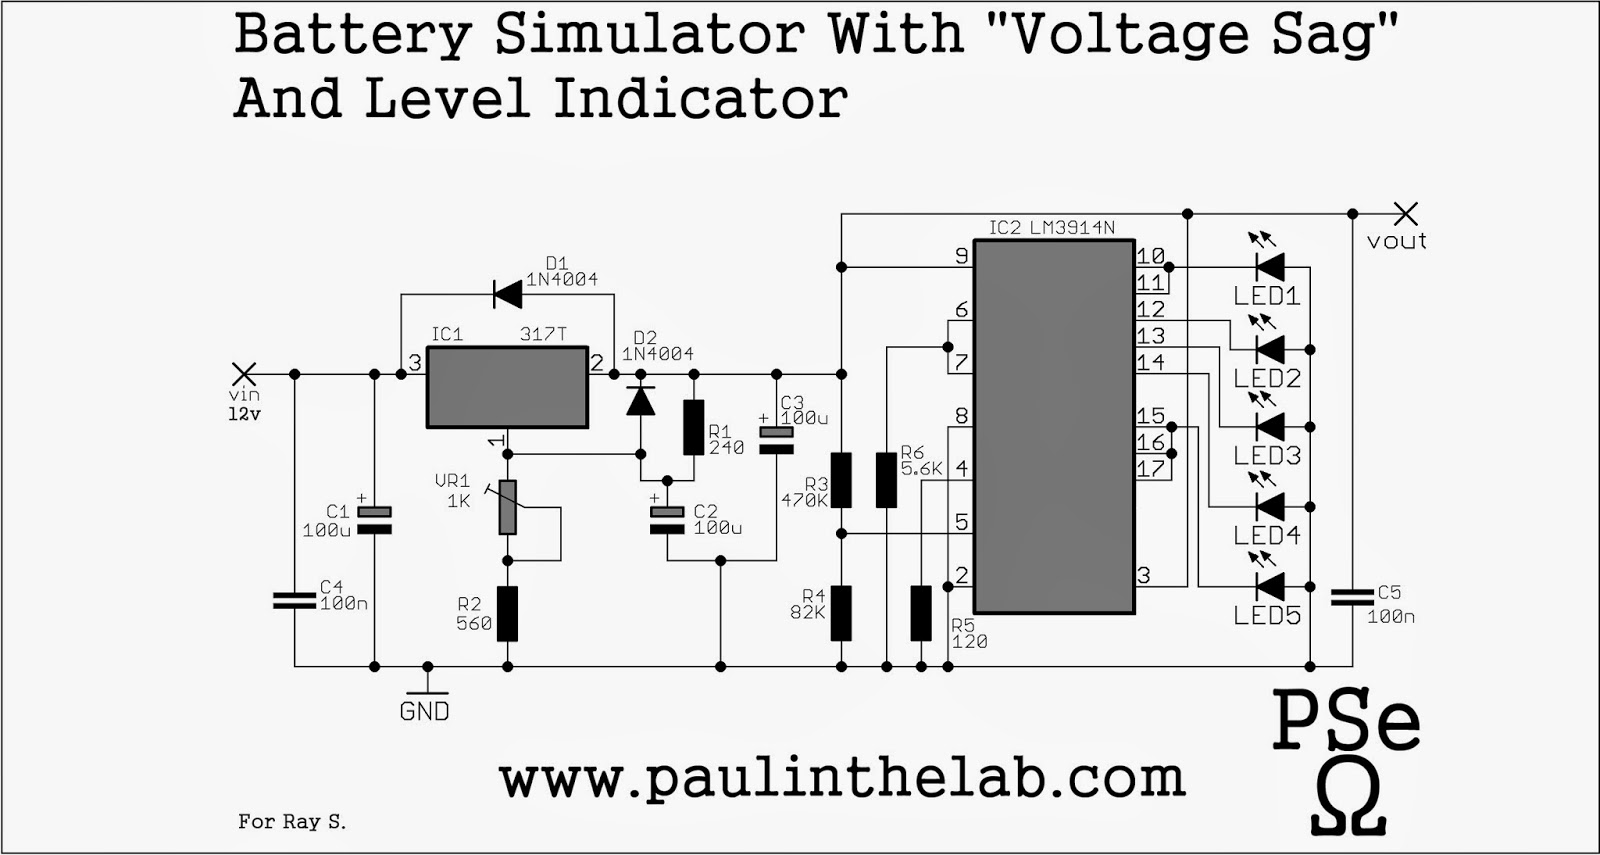 paul in the lab  battery simulator with voltage sag and bar led indicator stripboard veroboard